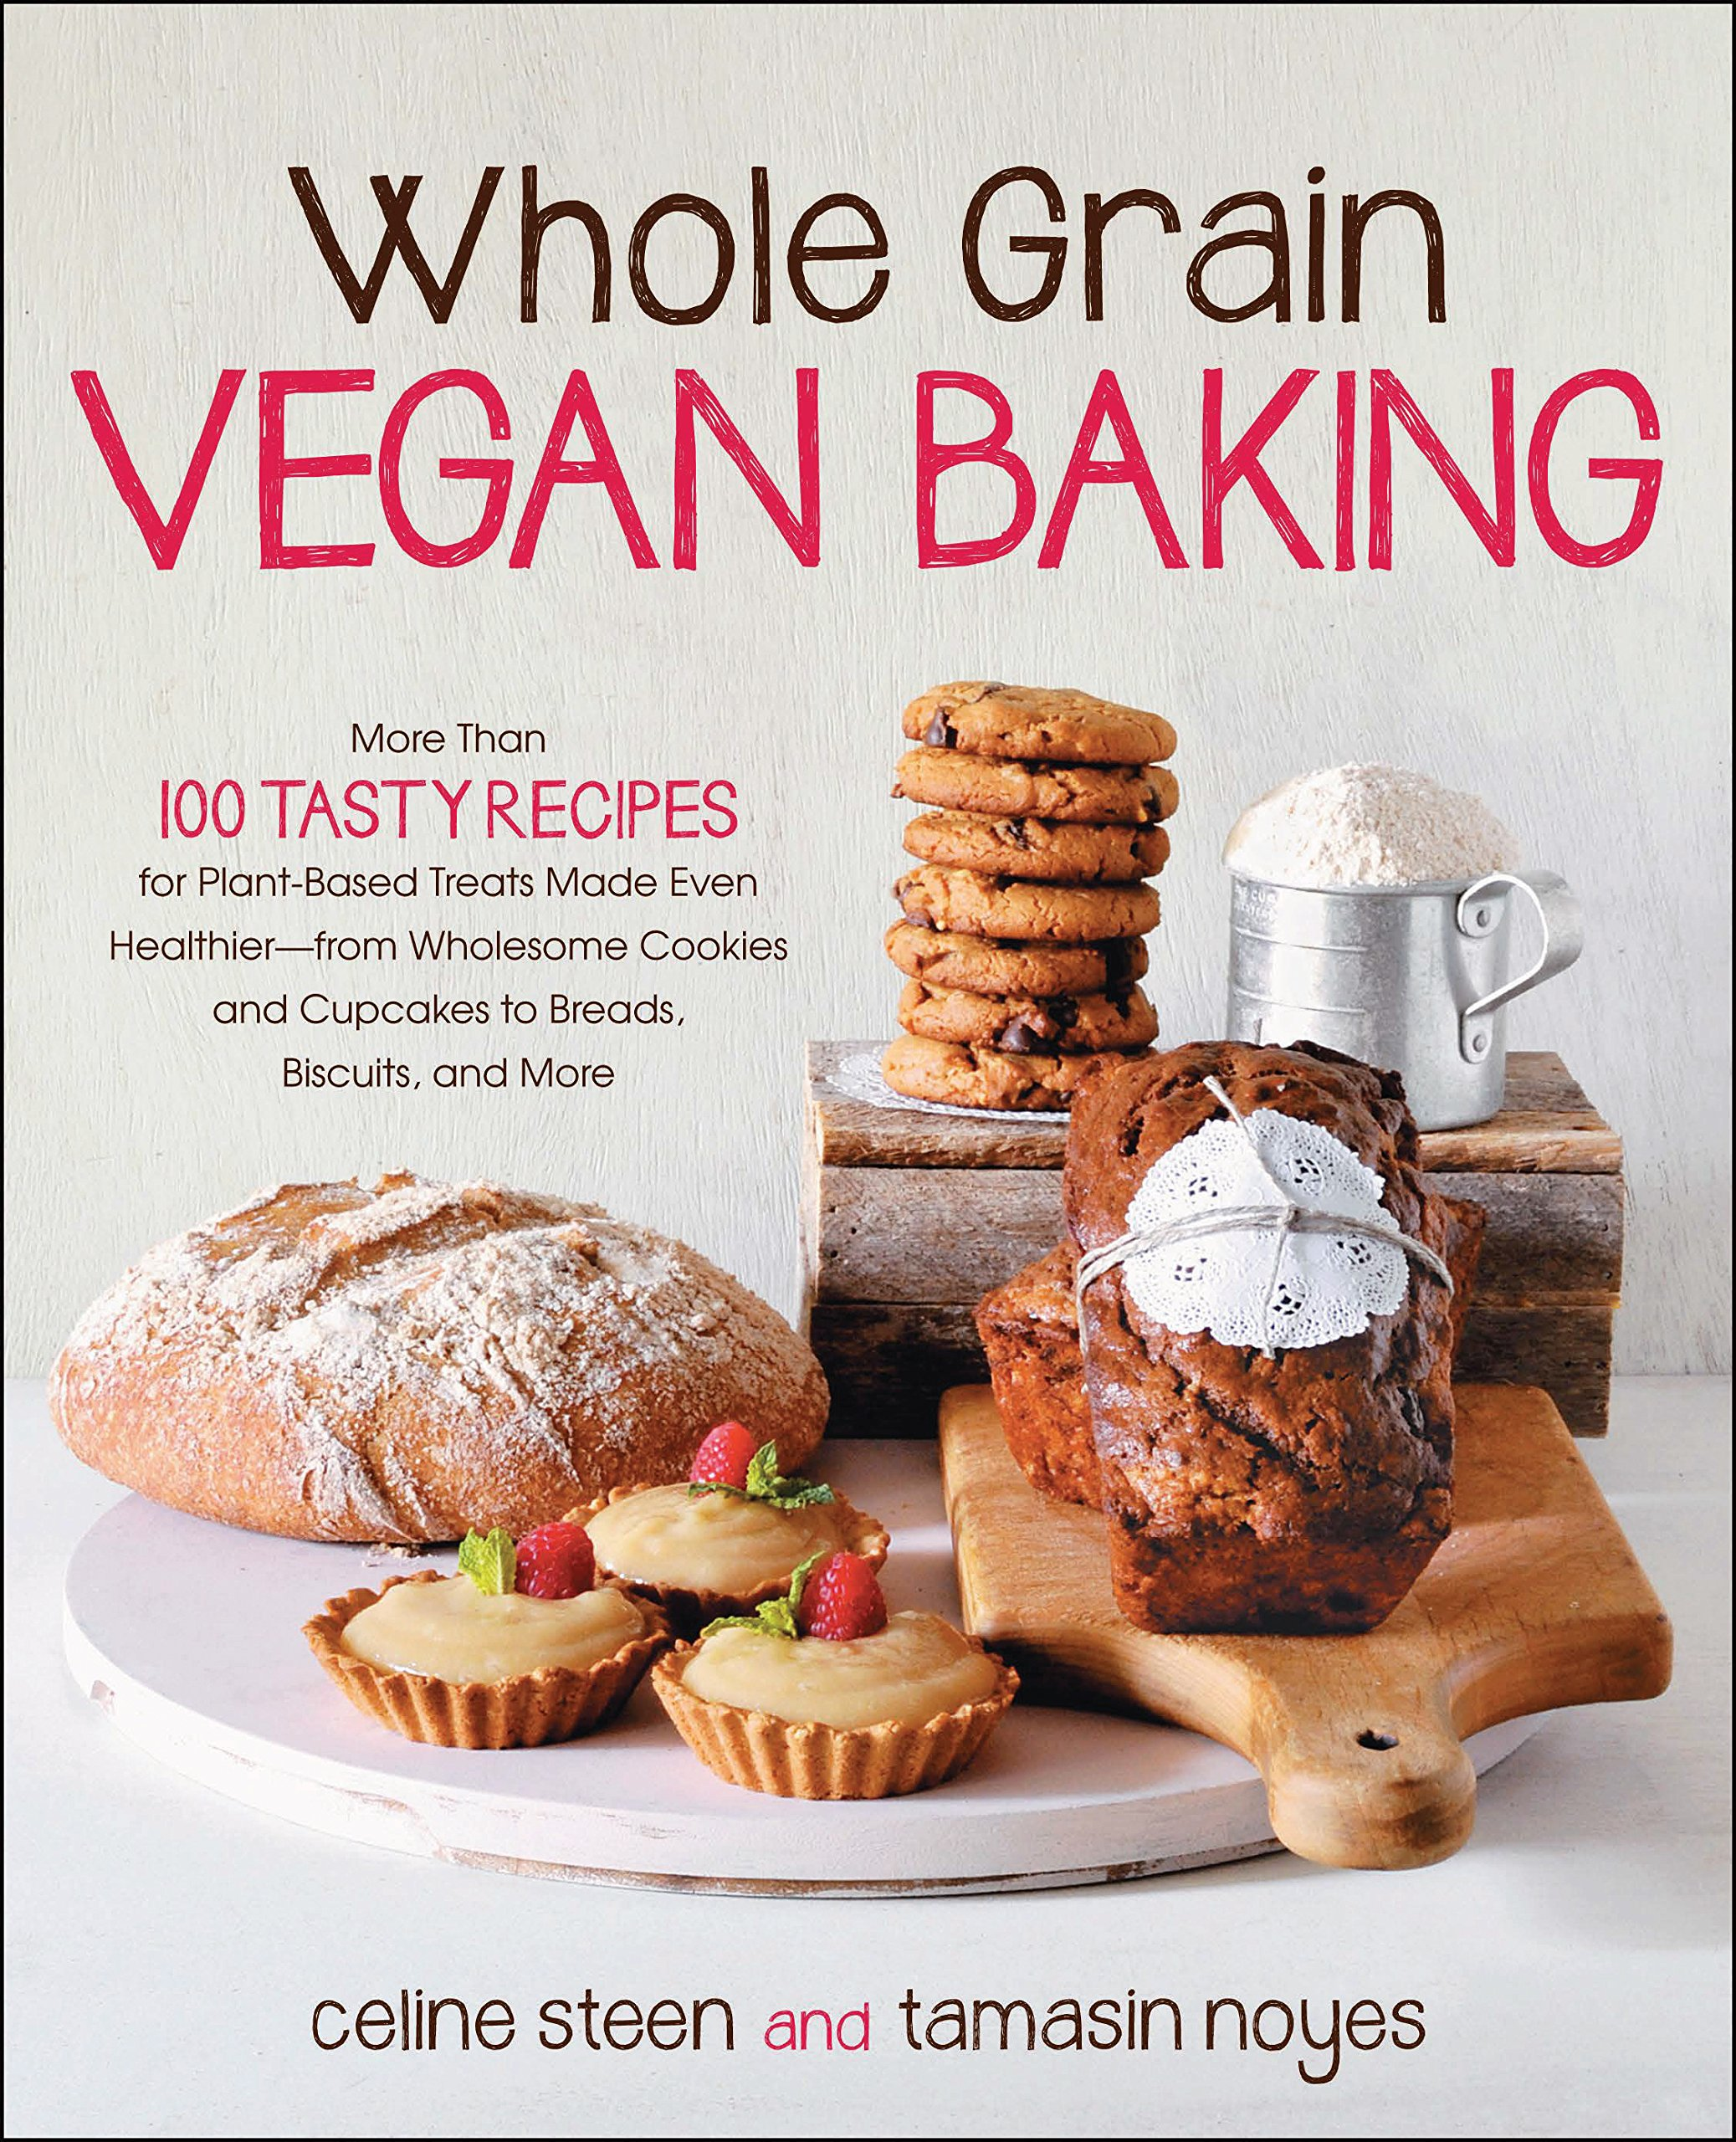 Whole Grain Vegan Baking: More than 100 Tasty Recipes for Plant-Based Treats Made Even Healthier-From Wholesome Cookies and Cupcakes to Breads, Biscuits, and More by imusti